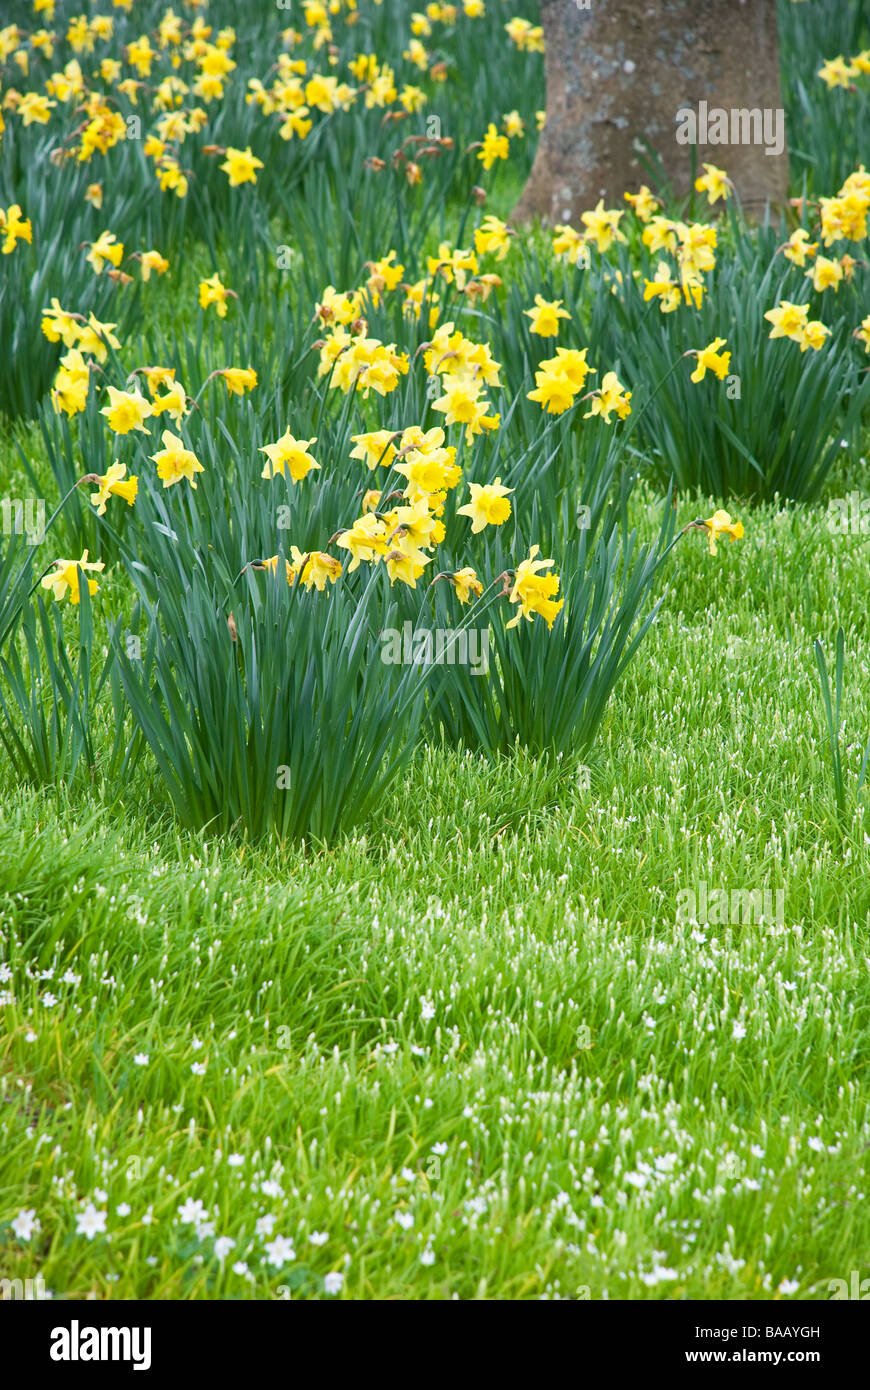 Daffodils on lawn of tiny white flowers stock photo royalty free stock photo daffodils on lawn of tiny white flowers dhlflorist Image collections